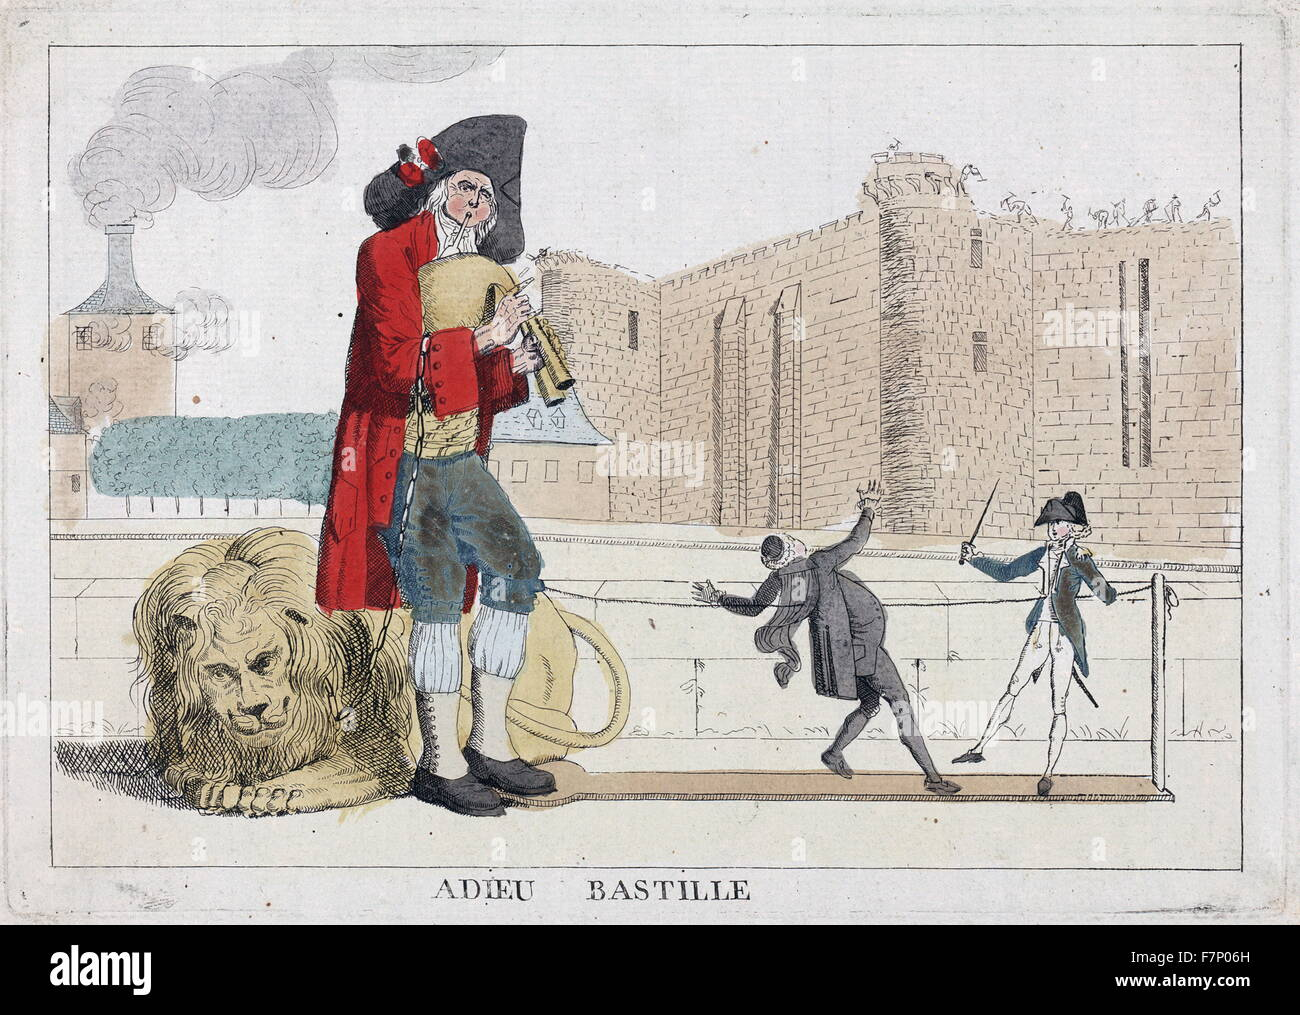 Adieu Bastille. Published 1789. etching, hand-coloured. Print shows a man playing a bagpipe, behind him lies a lion Stock Photo